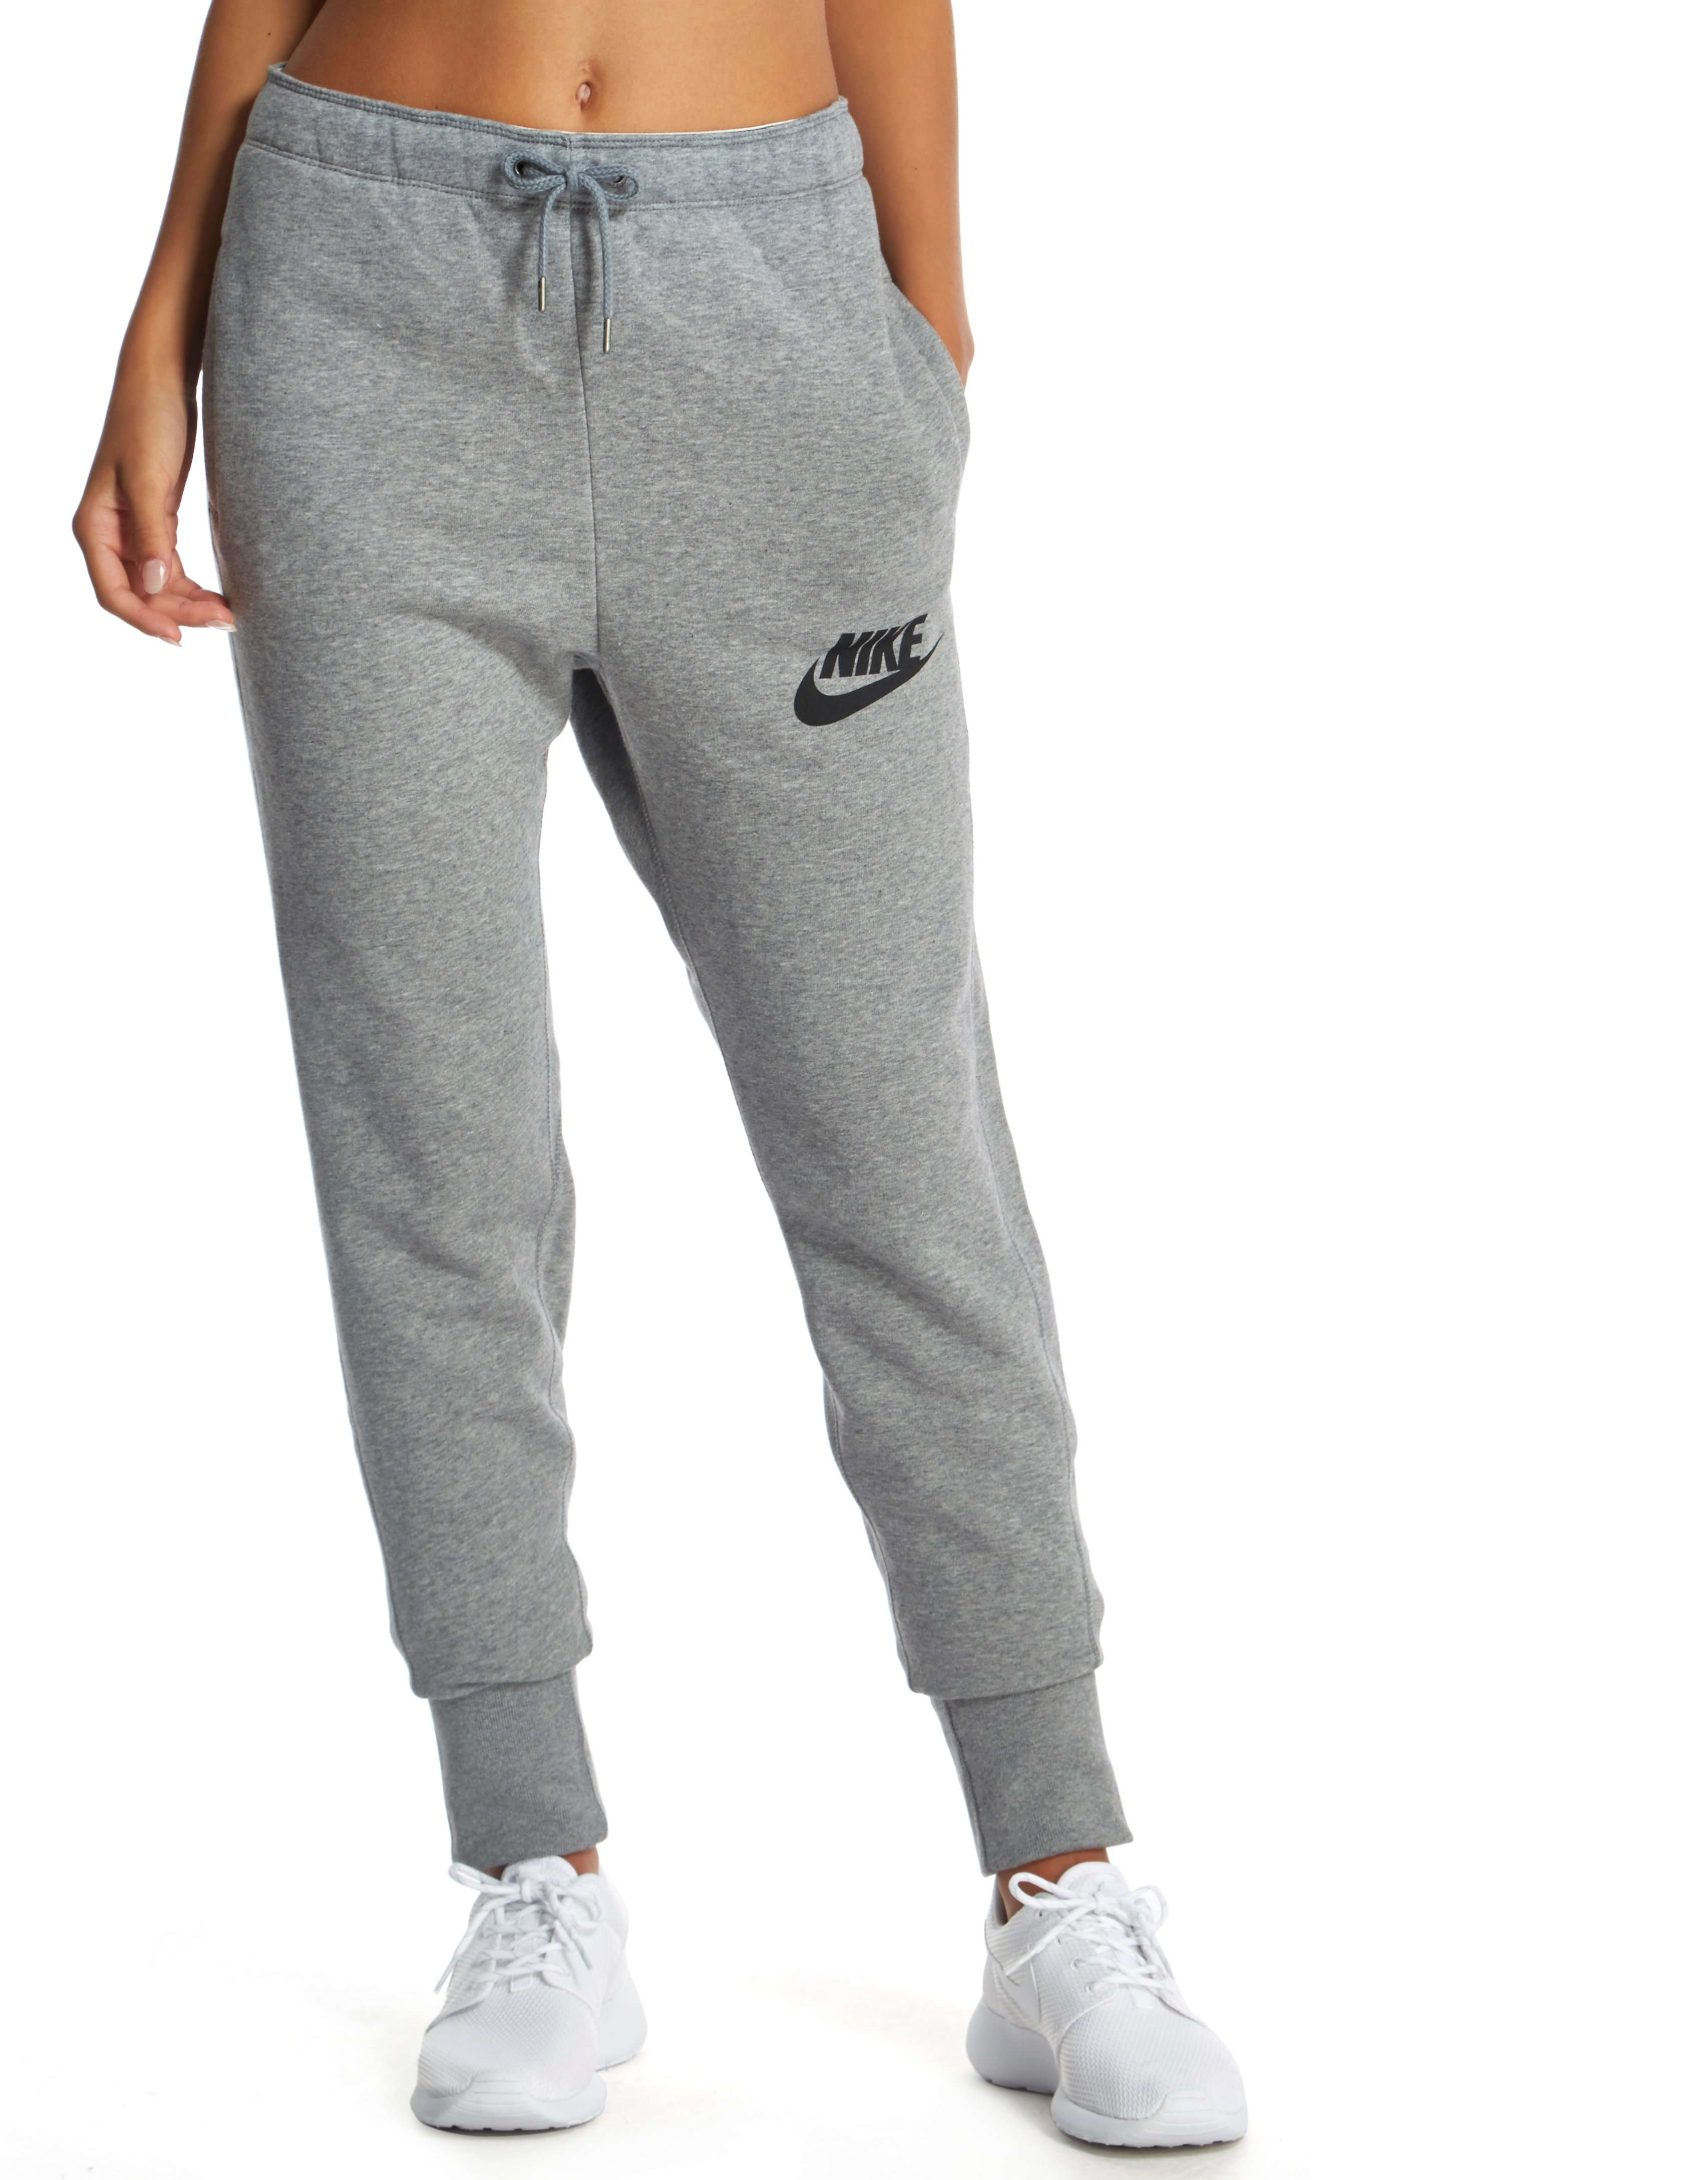 Amazing For Women Nike Joggers Women And More For Women Nike Joggers Women